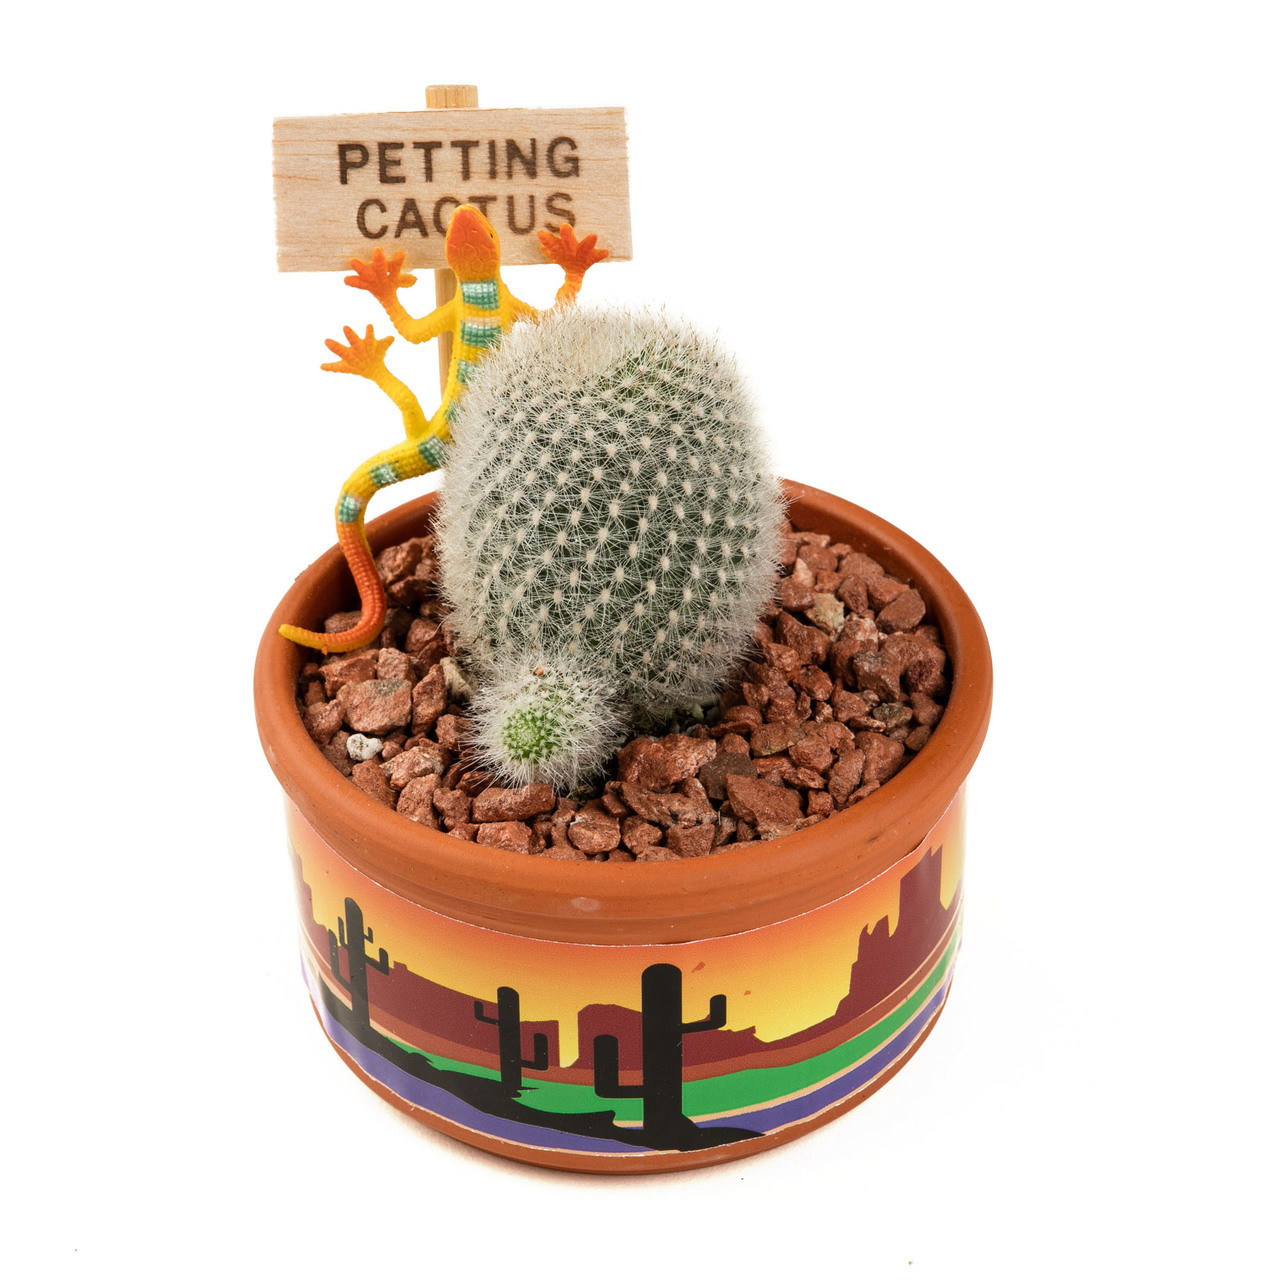 Petting Cactus - The Buttes - 3.5 inch